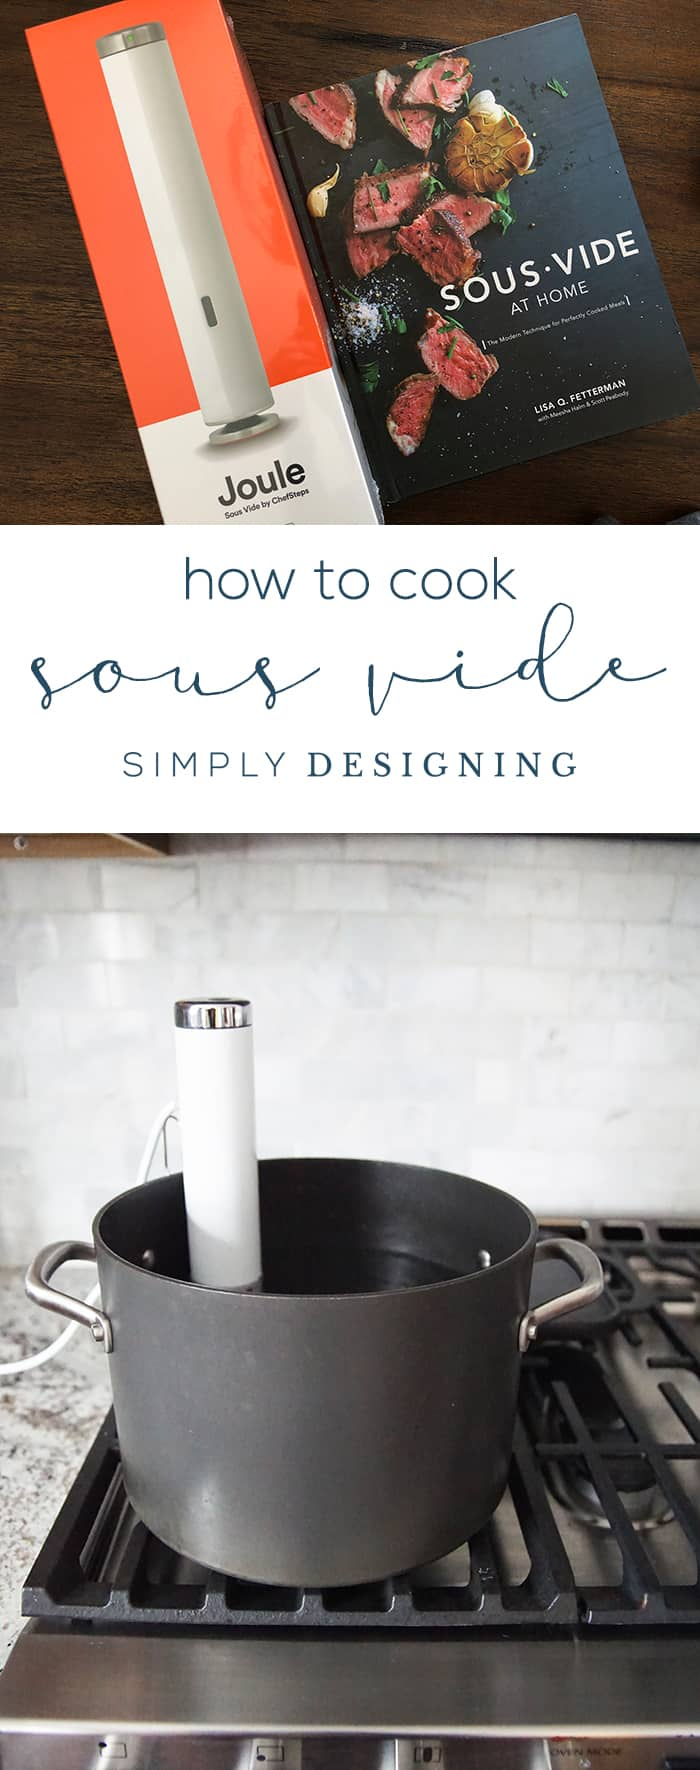 How to Cook Sous Vide